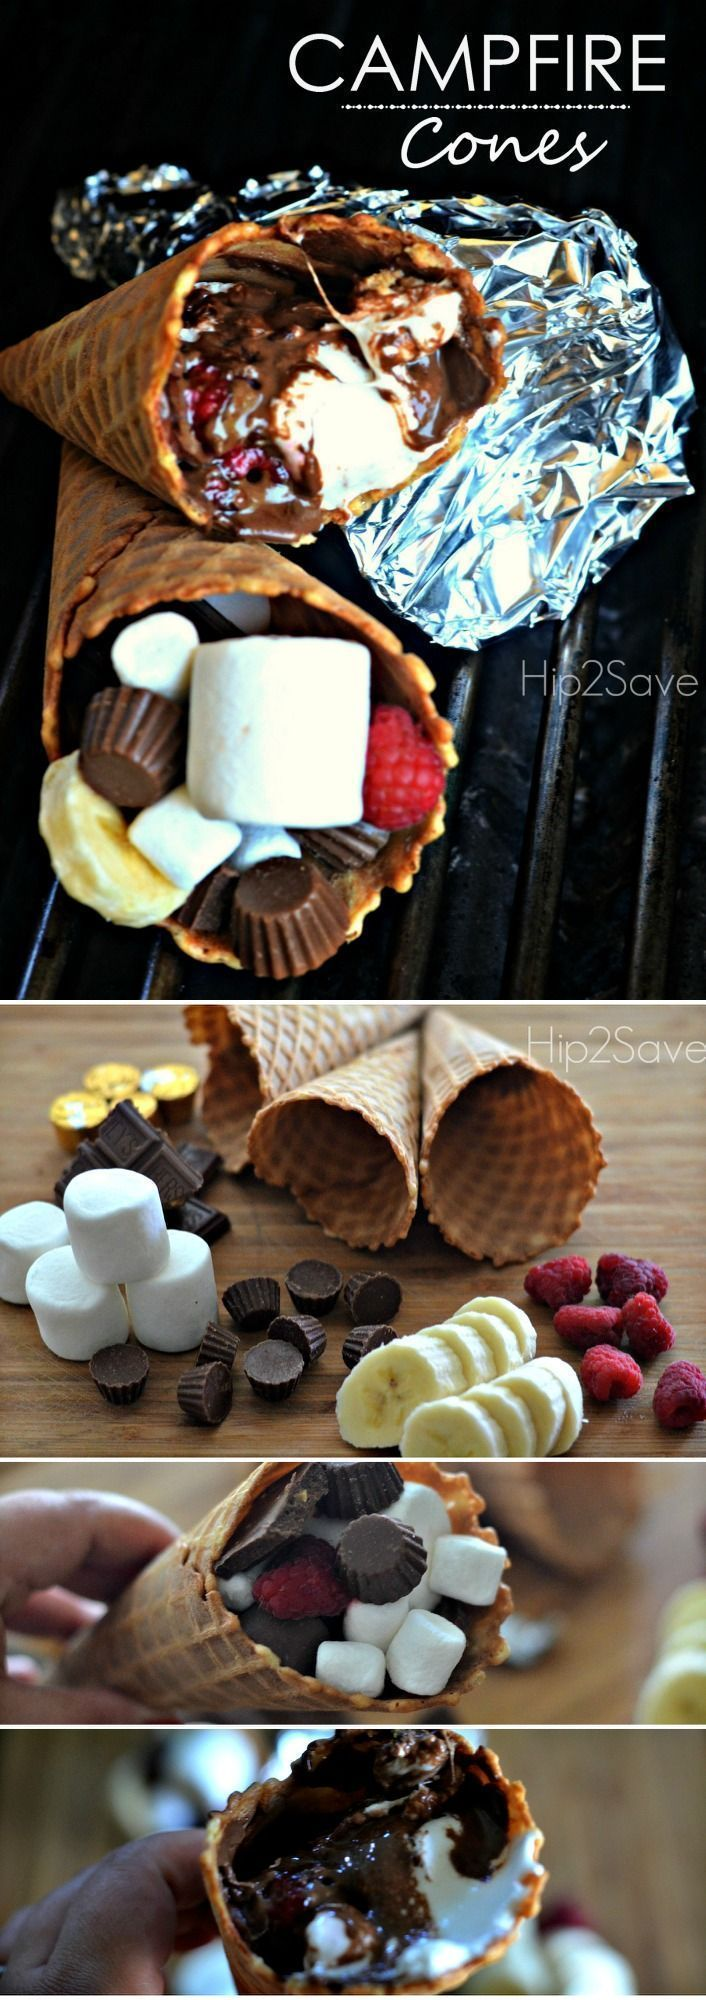 What a sweet campfire treat!